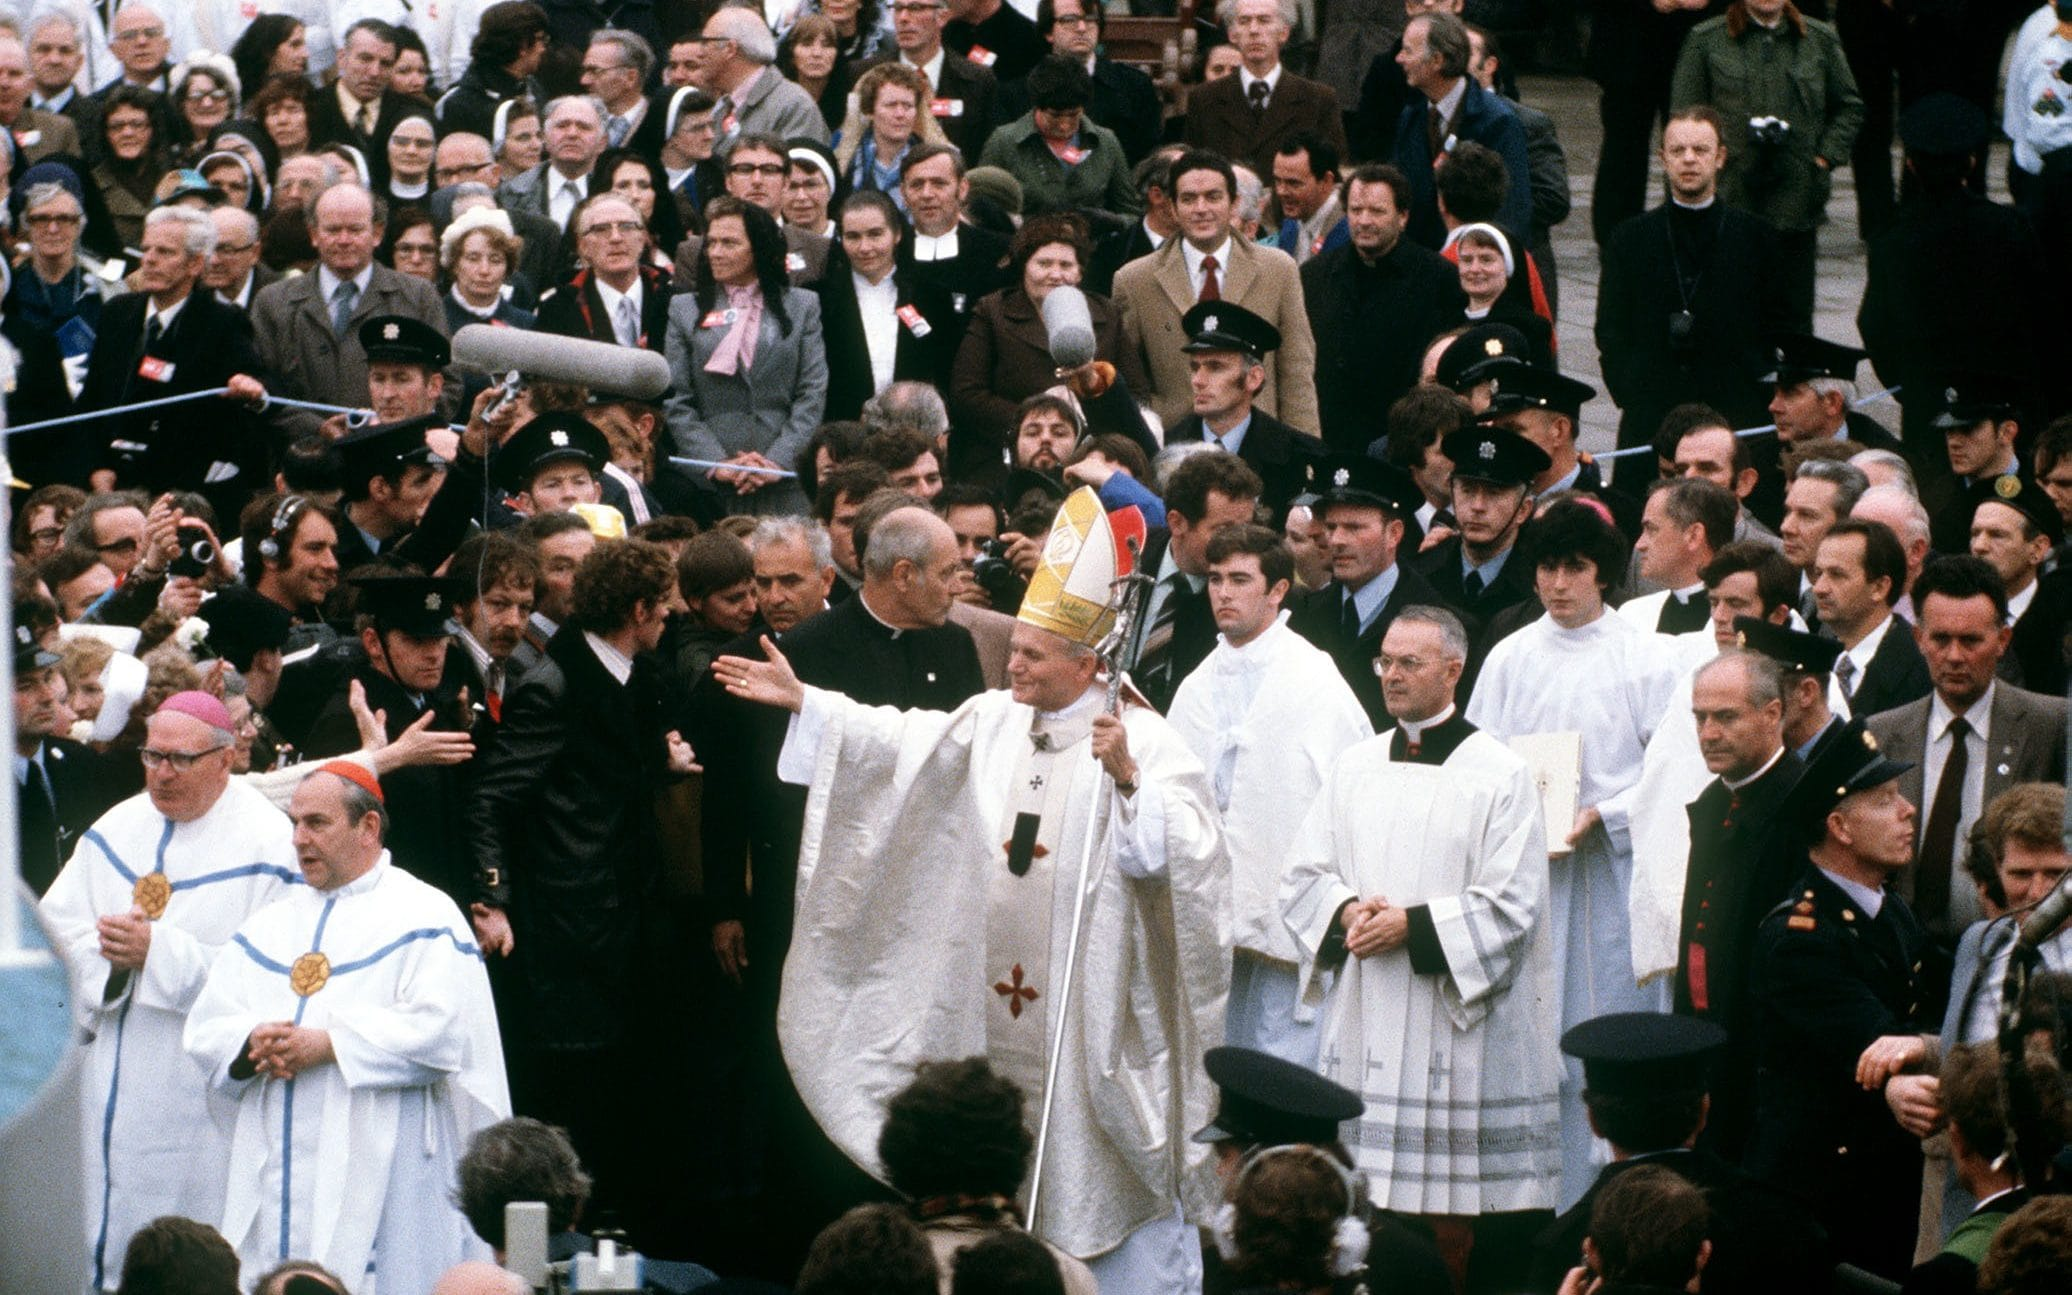 Irish priests call for celibacy rules to be relaxed and women to be ordained amid clergymen shortage